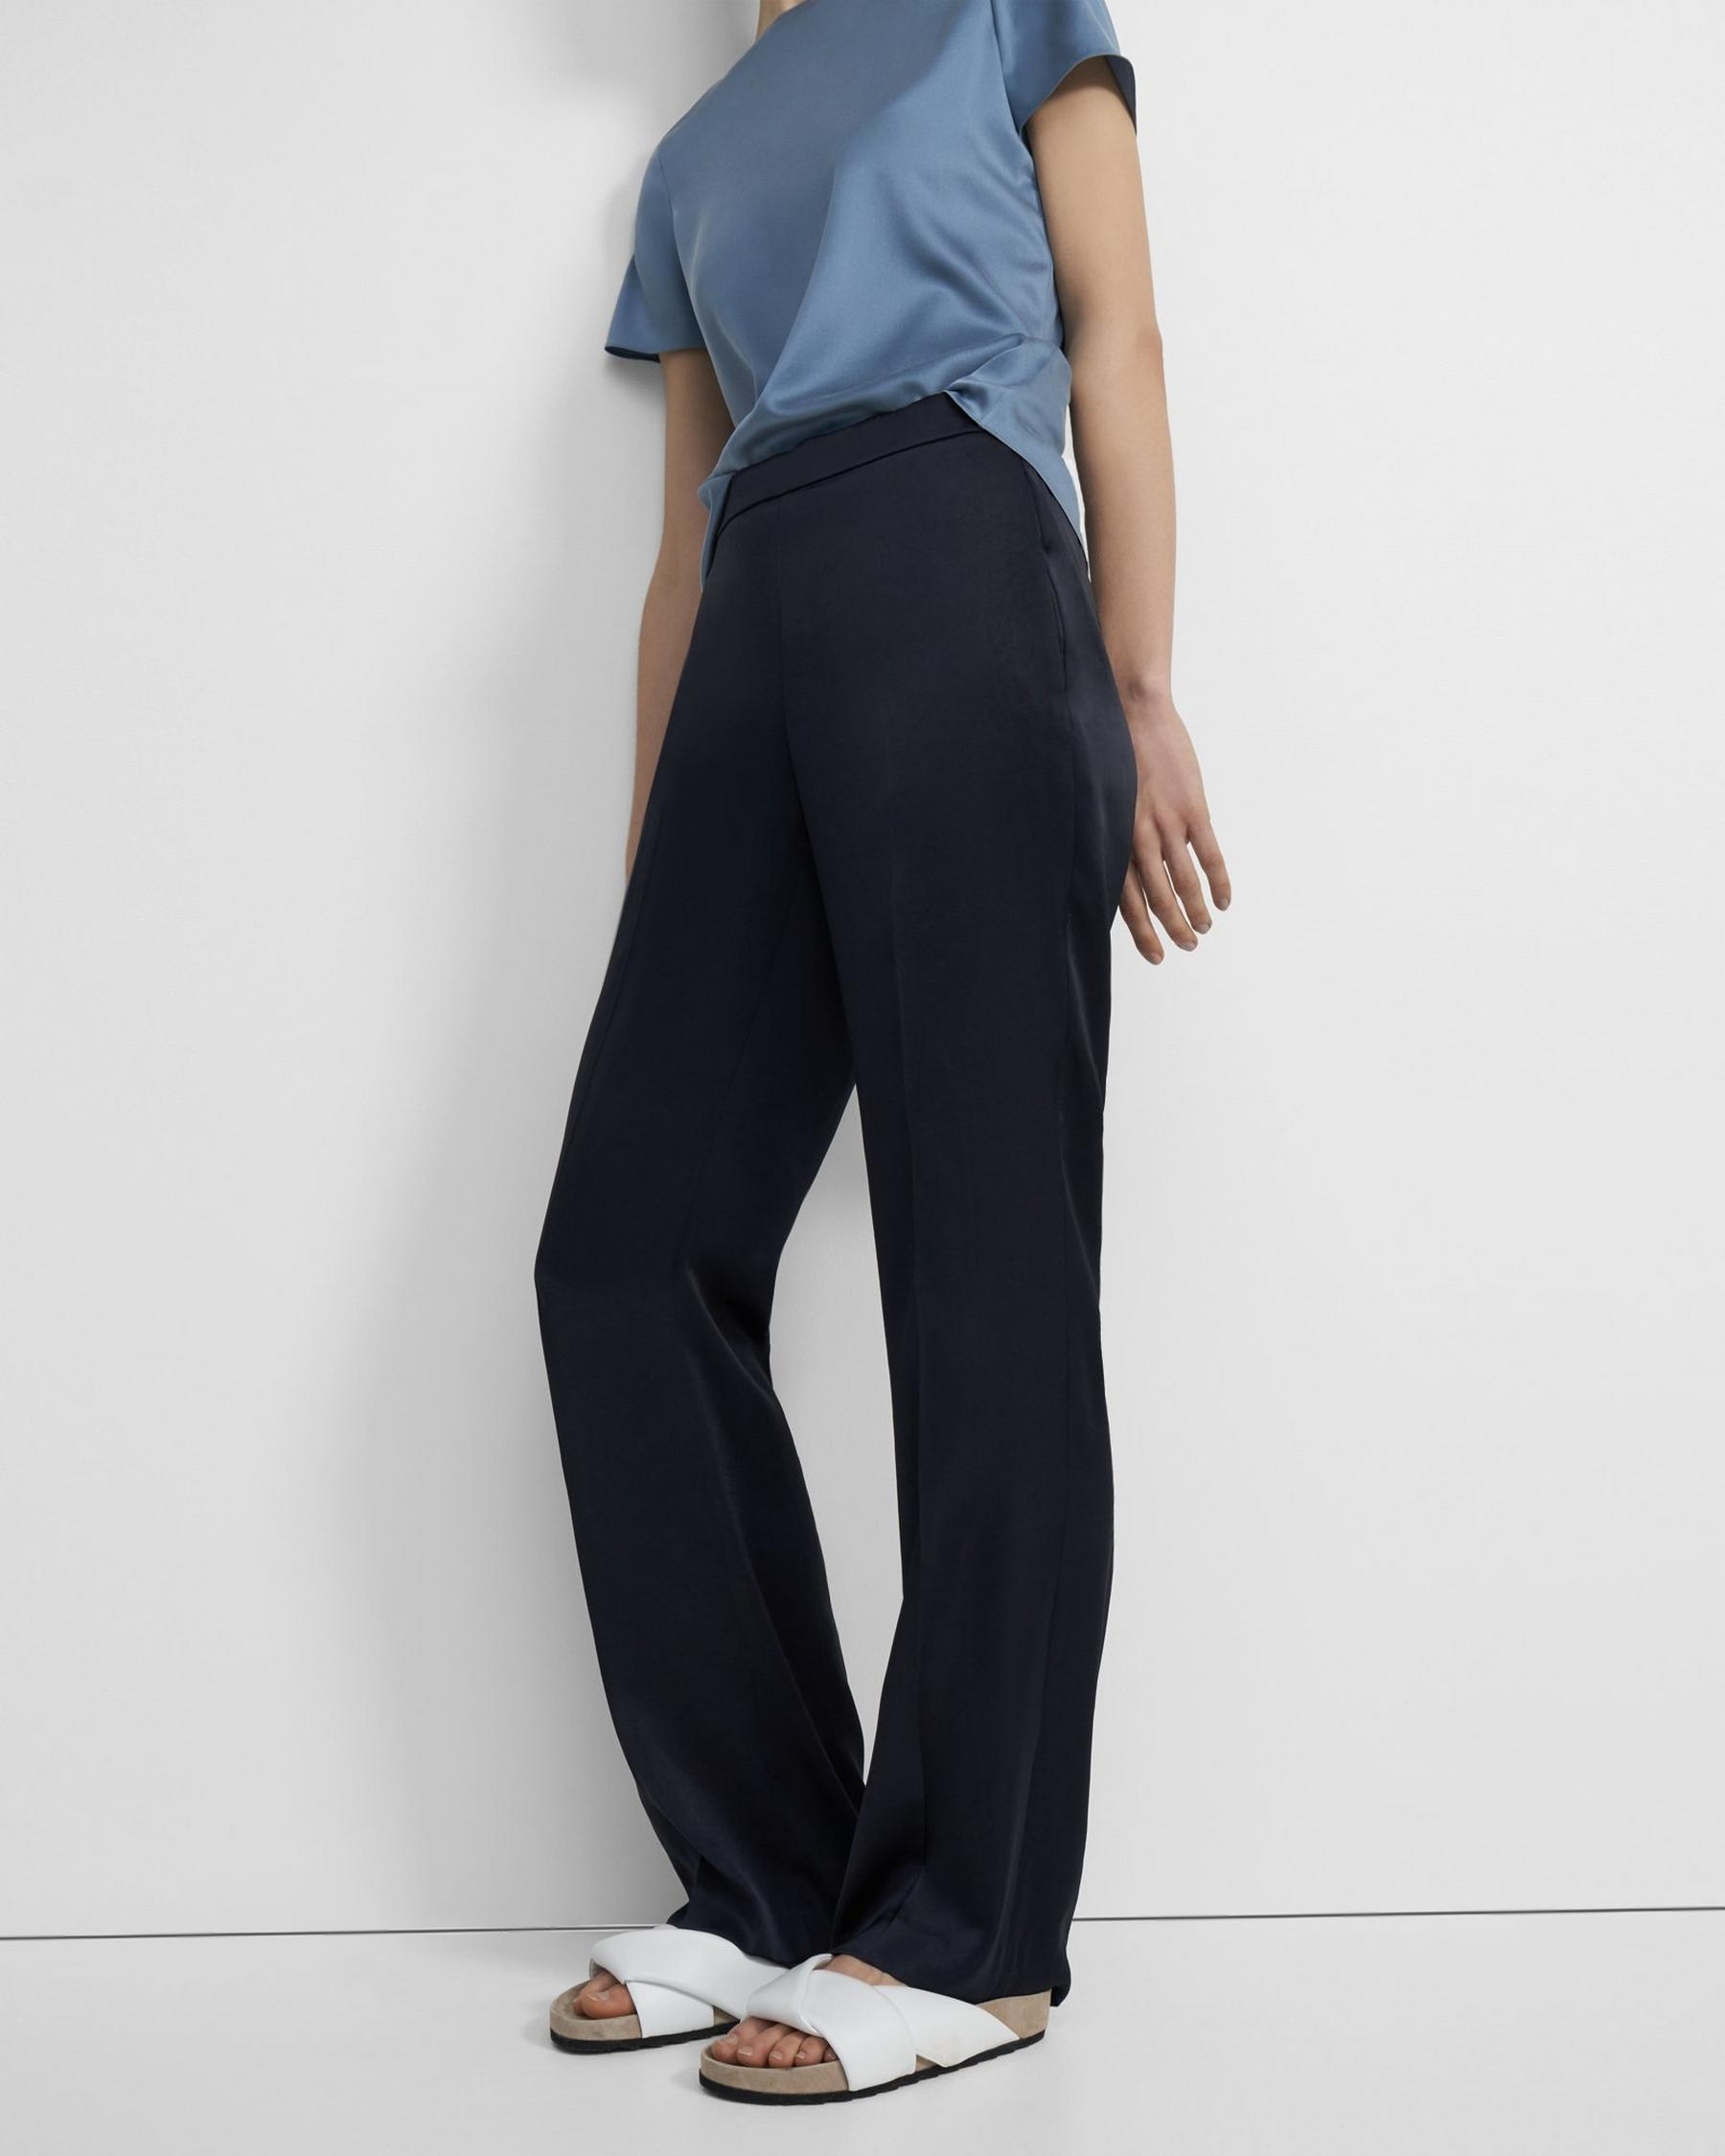 Straight-Leg Pull On Pant Pant in Crushed Satin 3